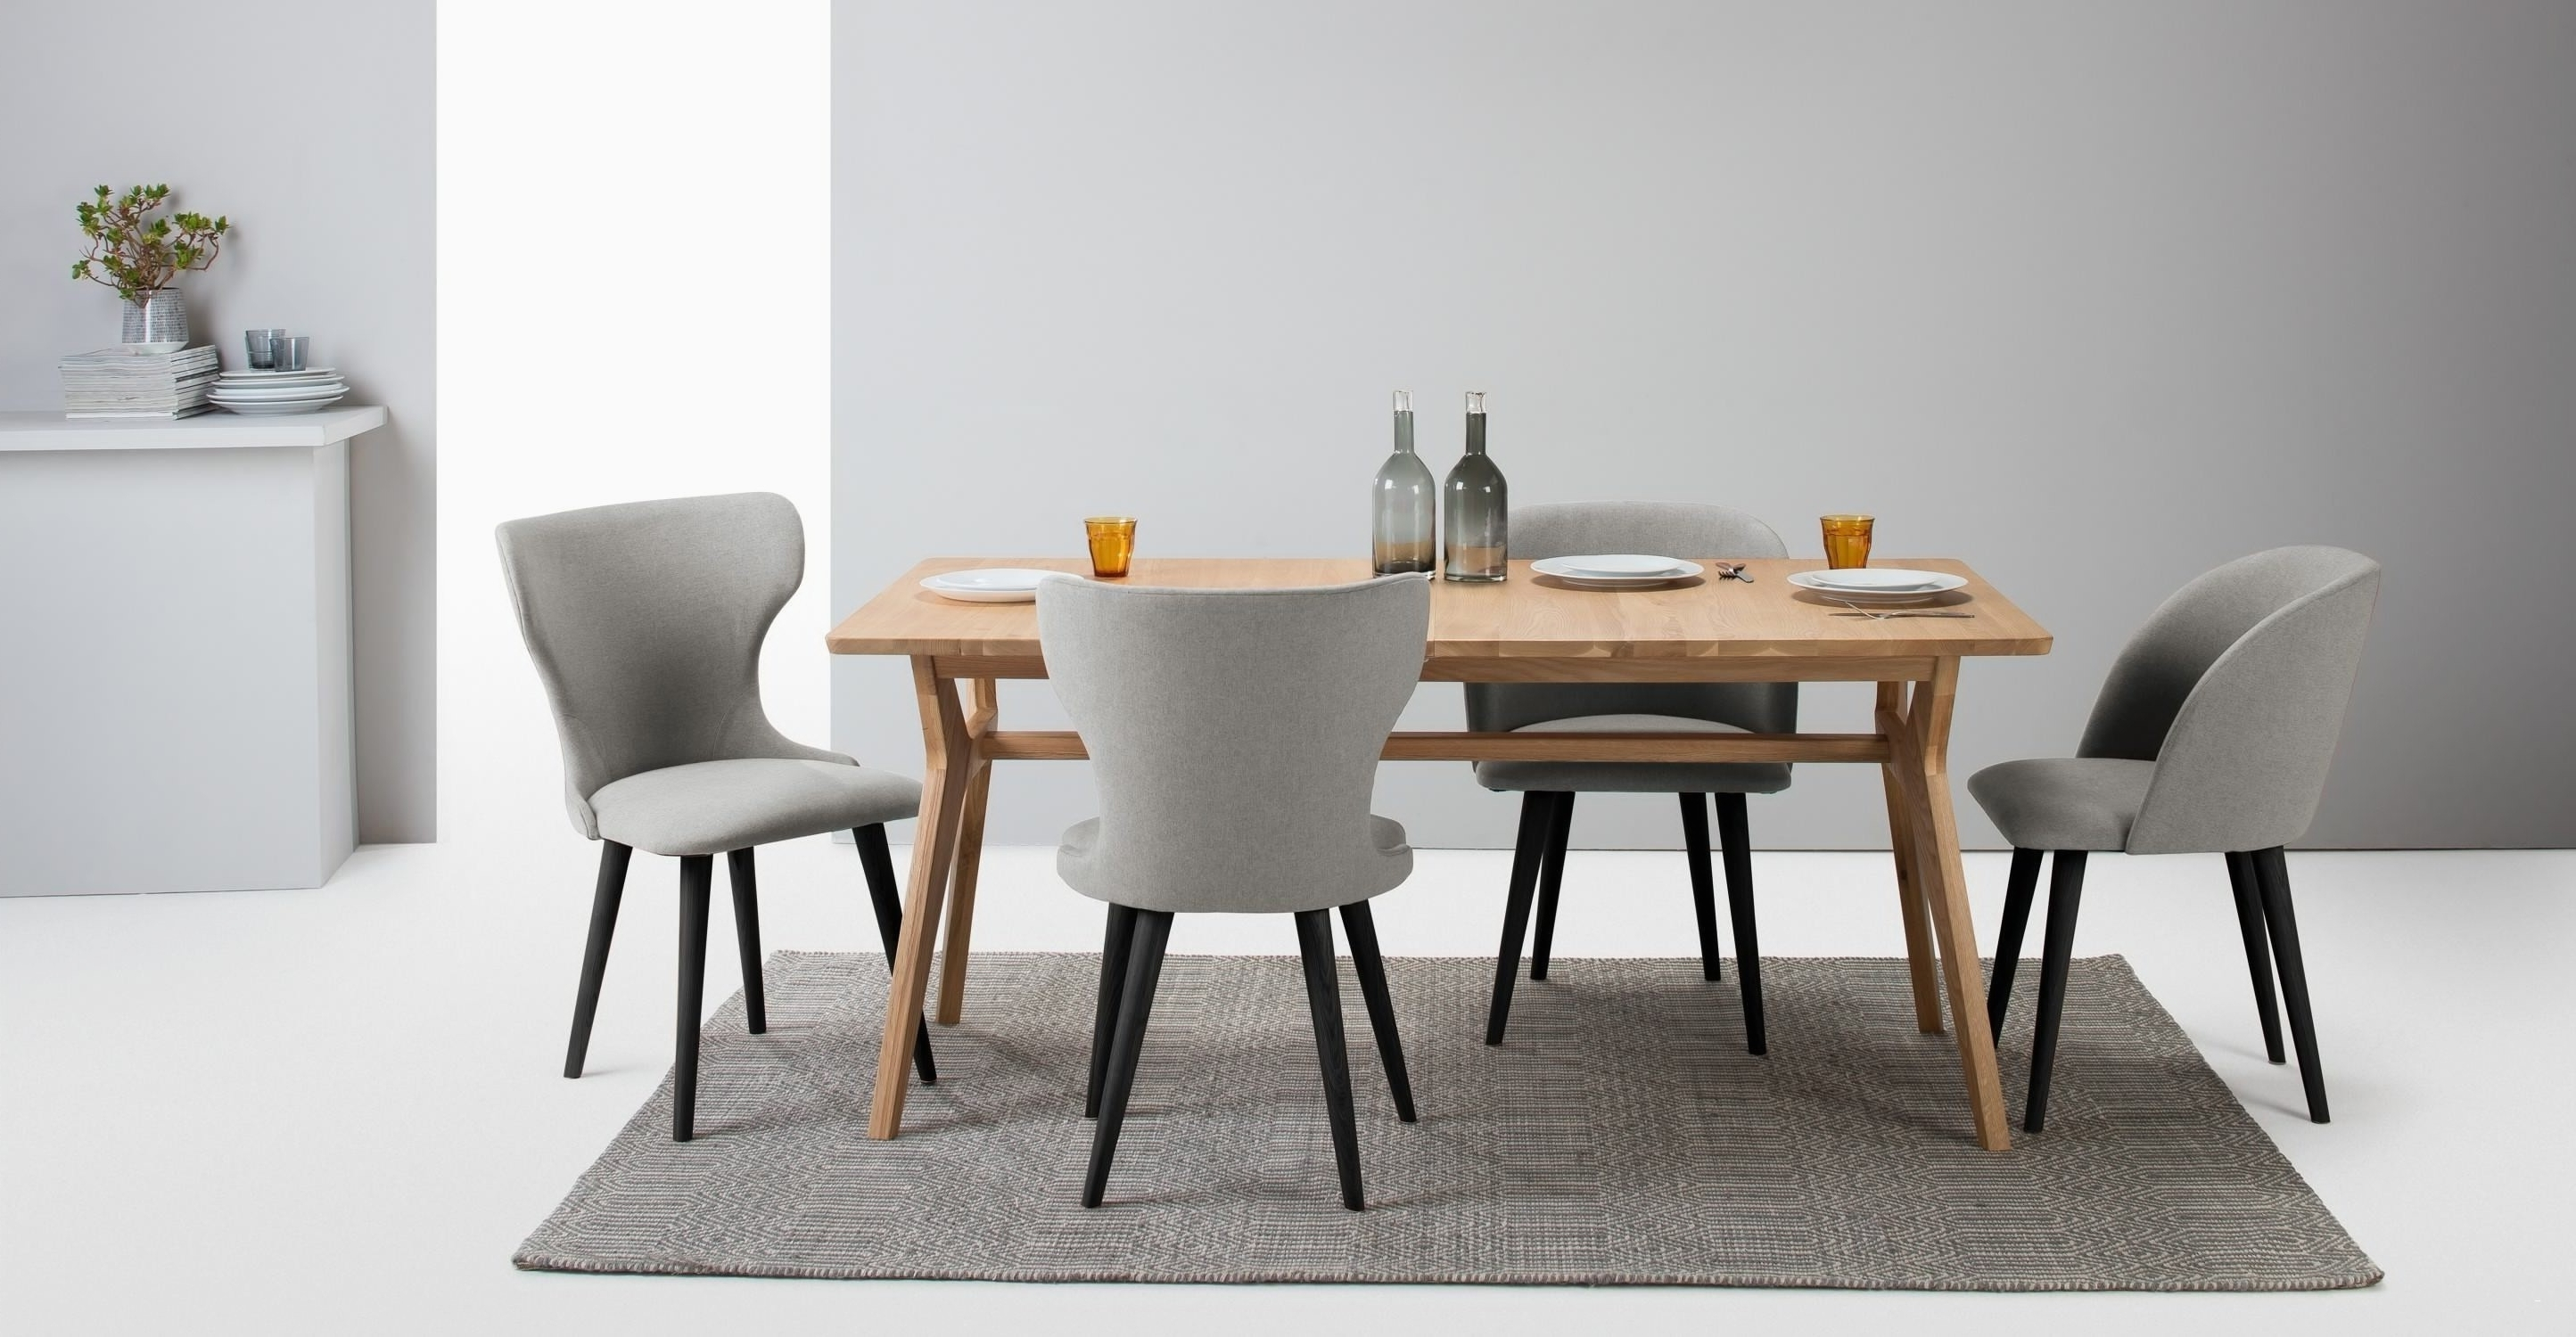 Hayden Dining Tables For Fashionable Parsons Dining Table West Elm Lovely West Elm Dining Table Fresh (View 18 of 25)